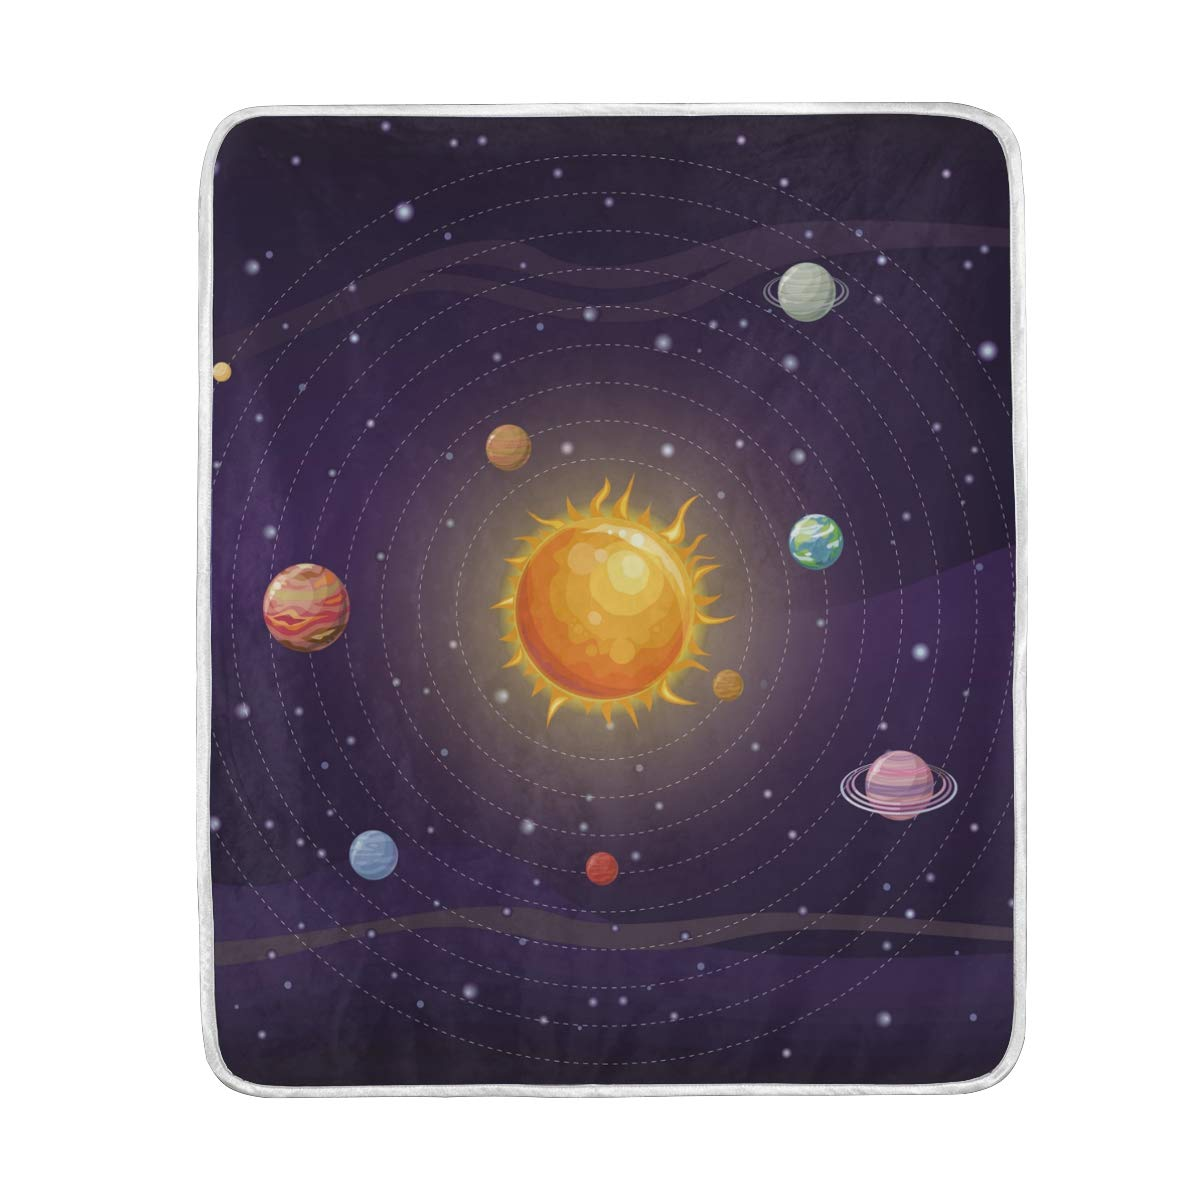 WIHVE Throw Blanket Space Solar System Lightweight Warm Cozy Microfiber Blankets Travelling Camping 50 x 60 Inch, All Season for Couch or Bed